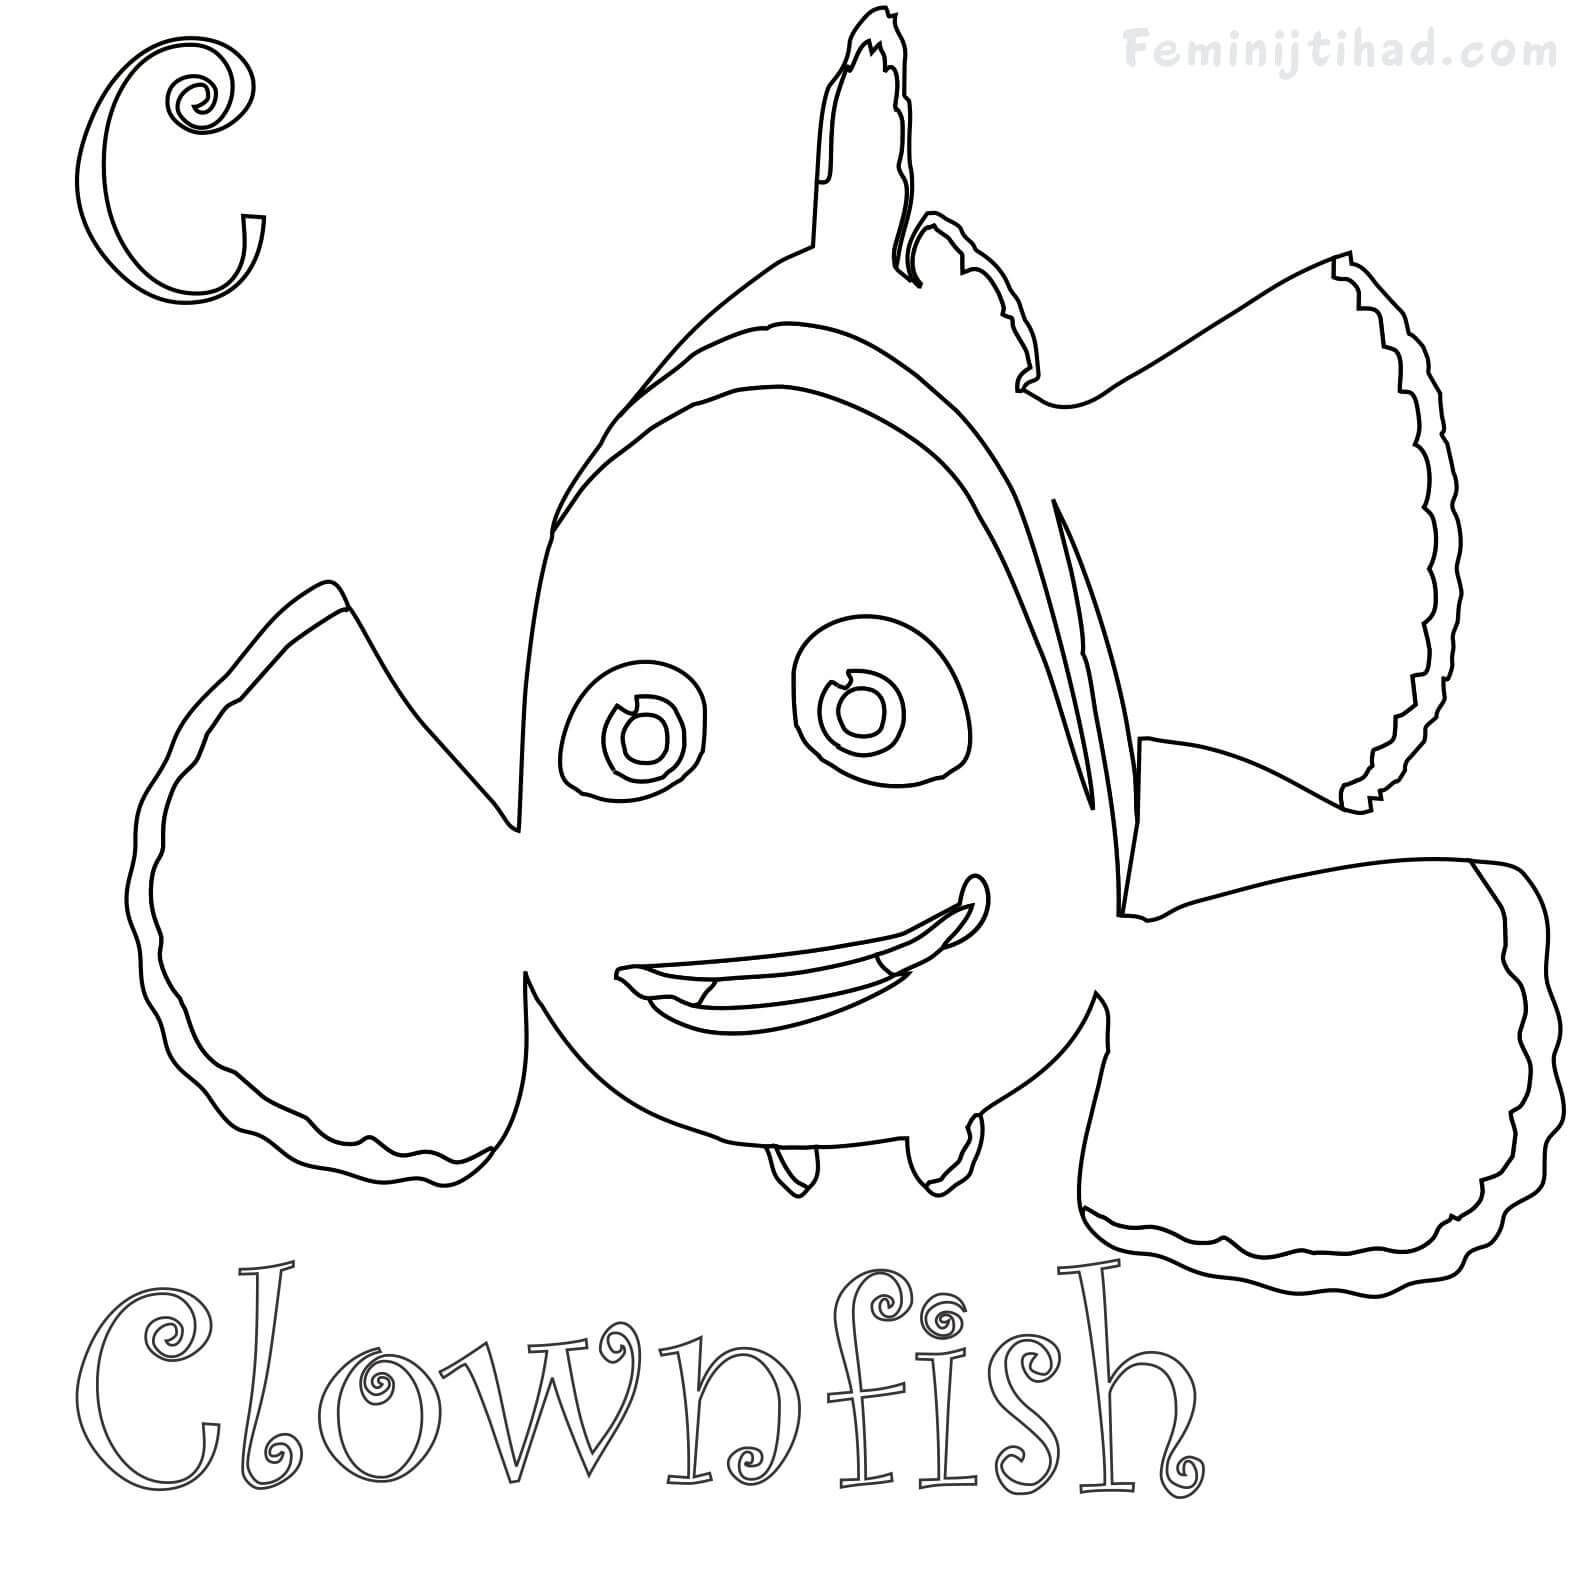 C For Clownfish Coloring Pages Printable Free Coloring Sheets Fish Coloring Page Clown Fish Animal Coloring Pages